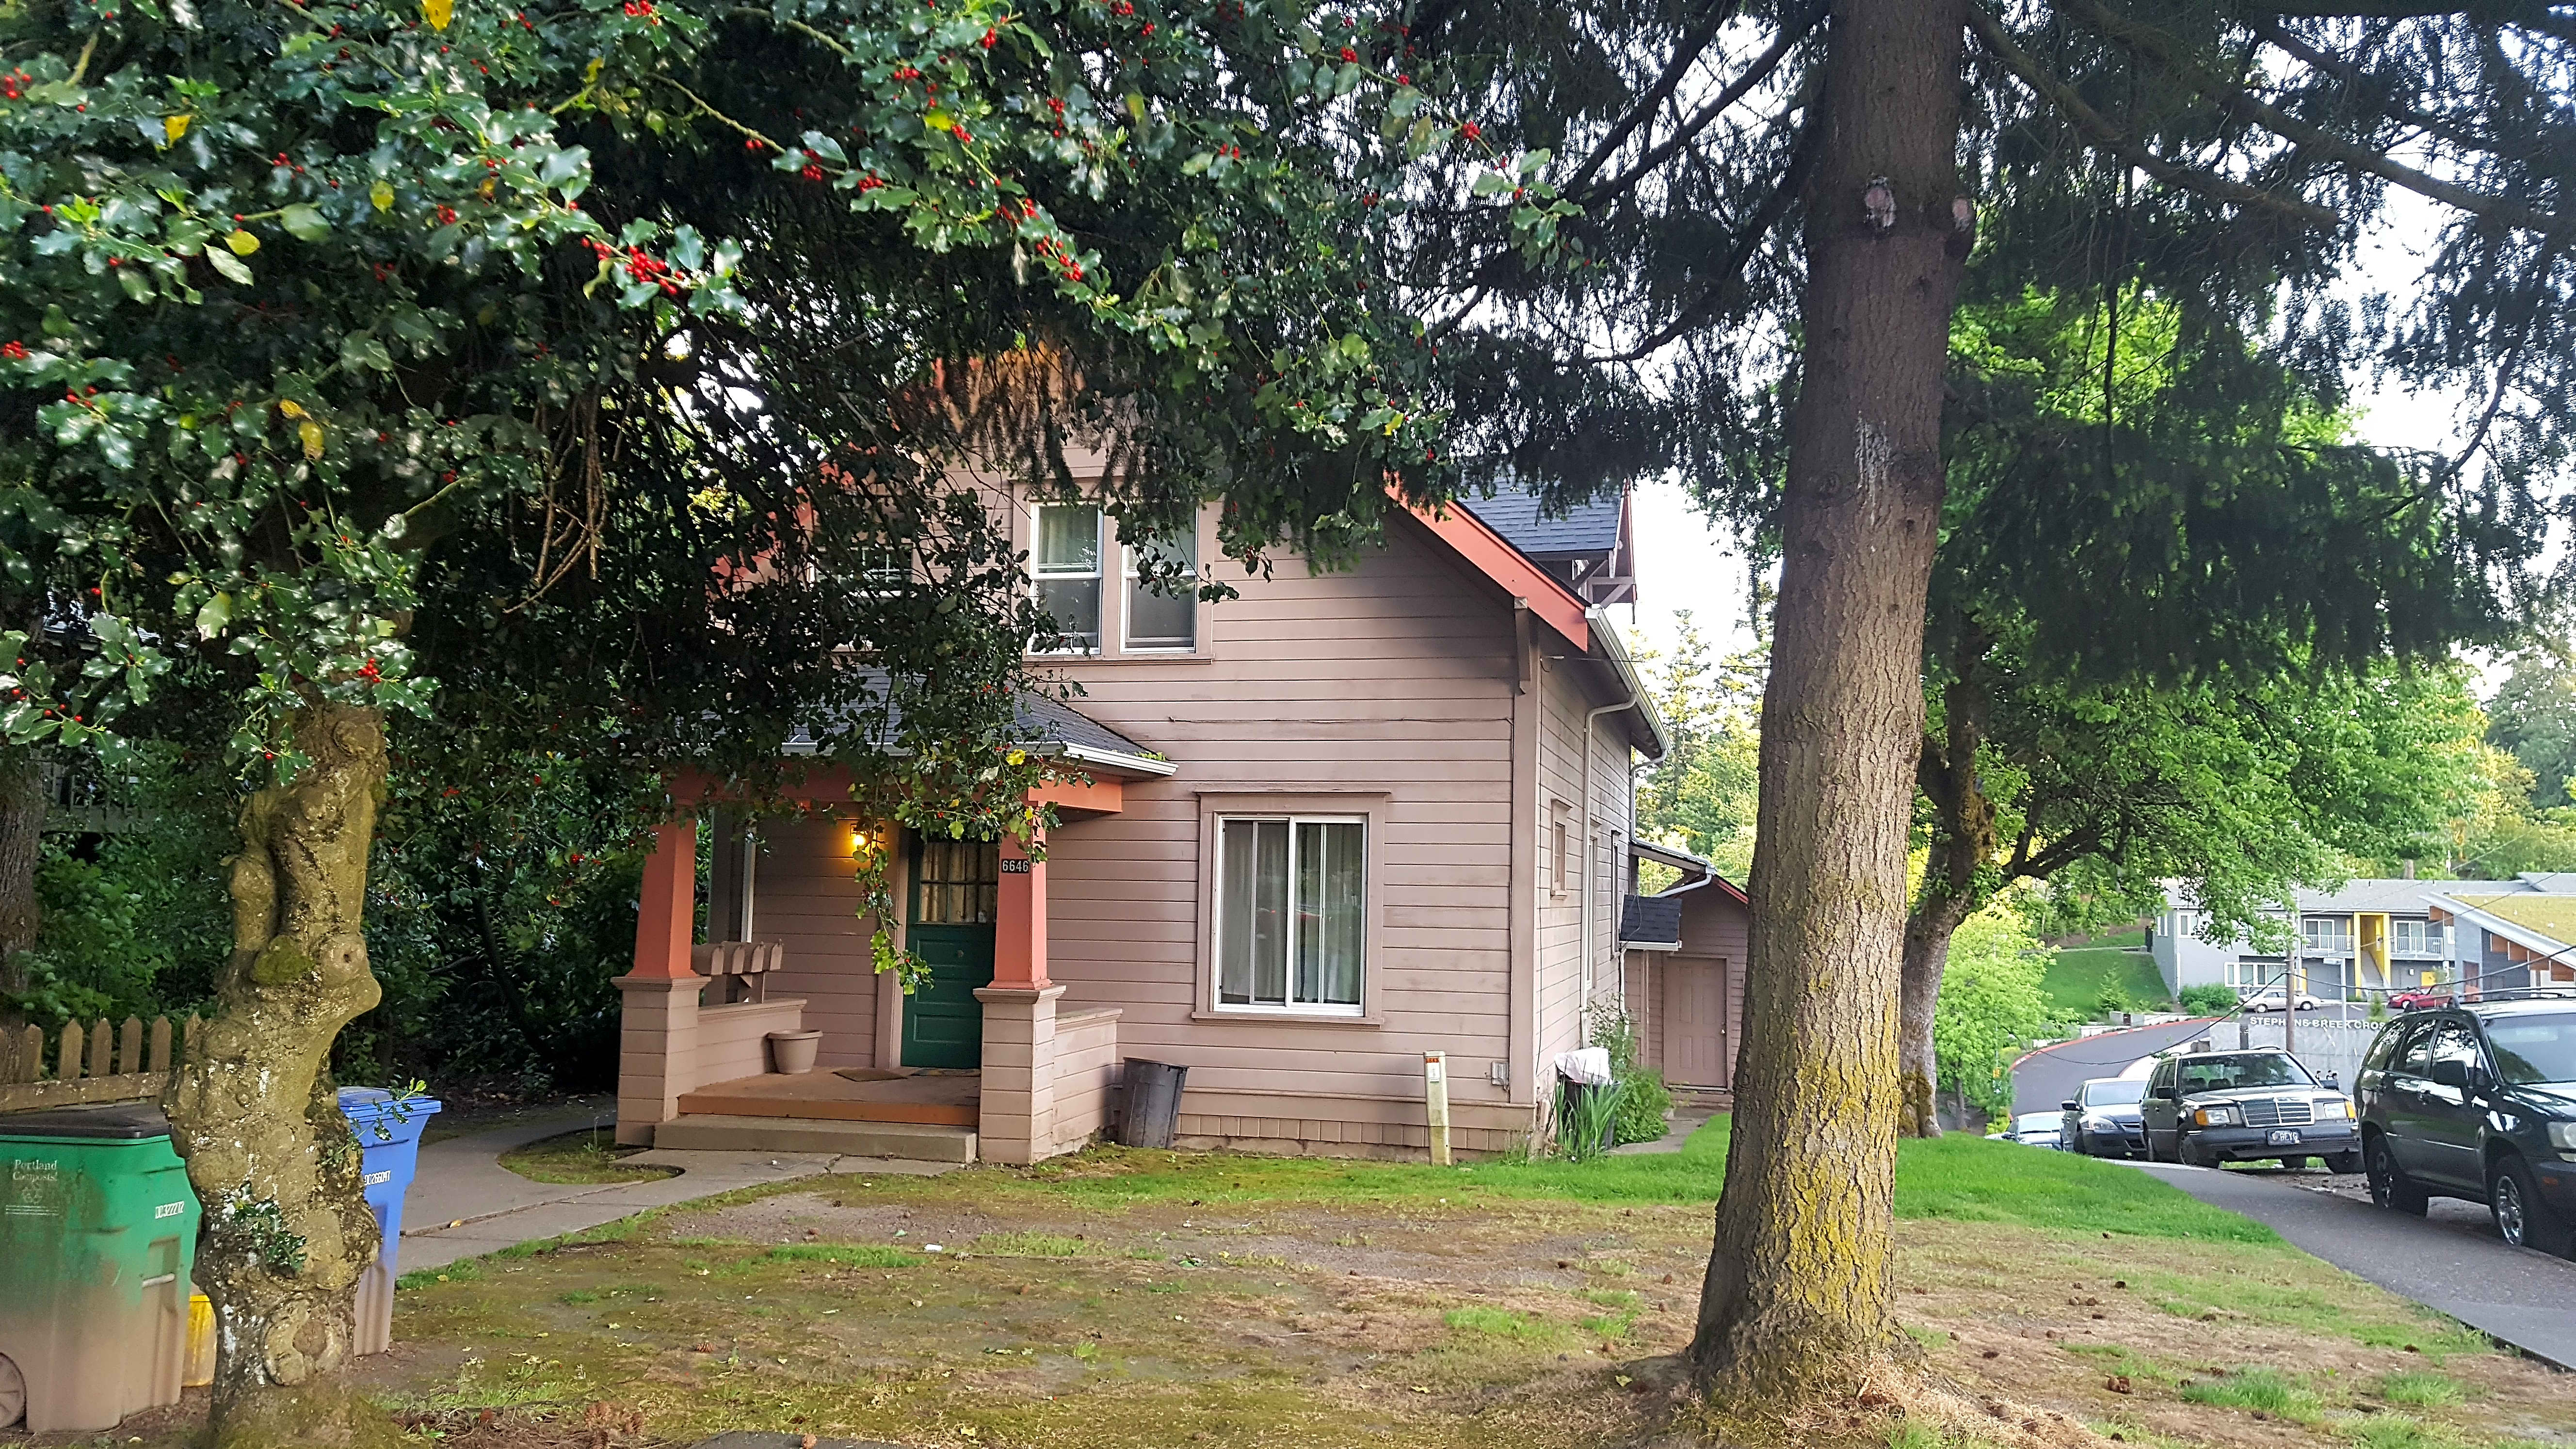 Duplex for Rent in Portland